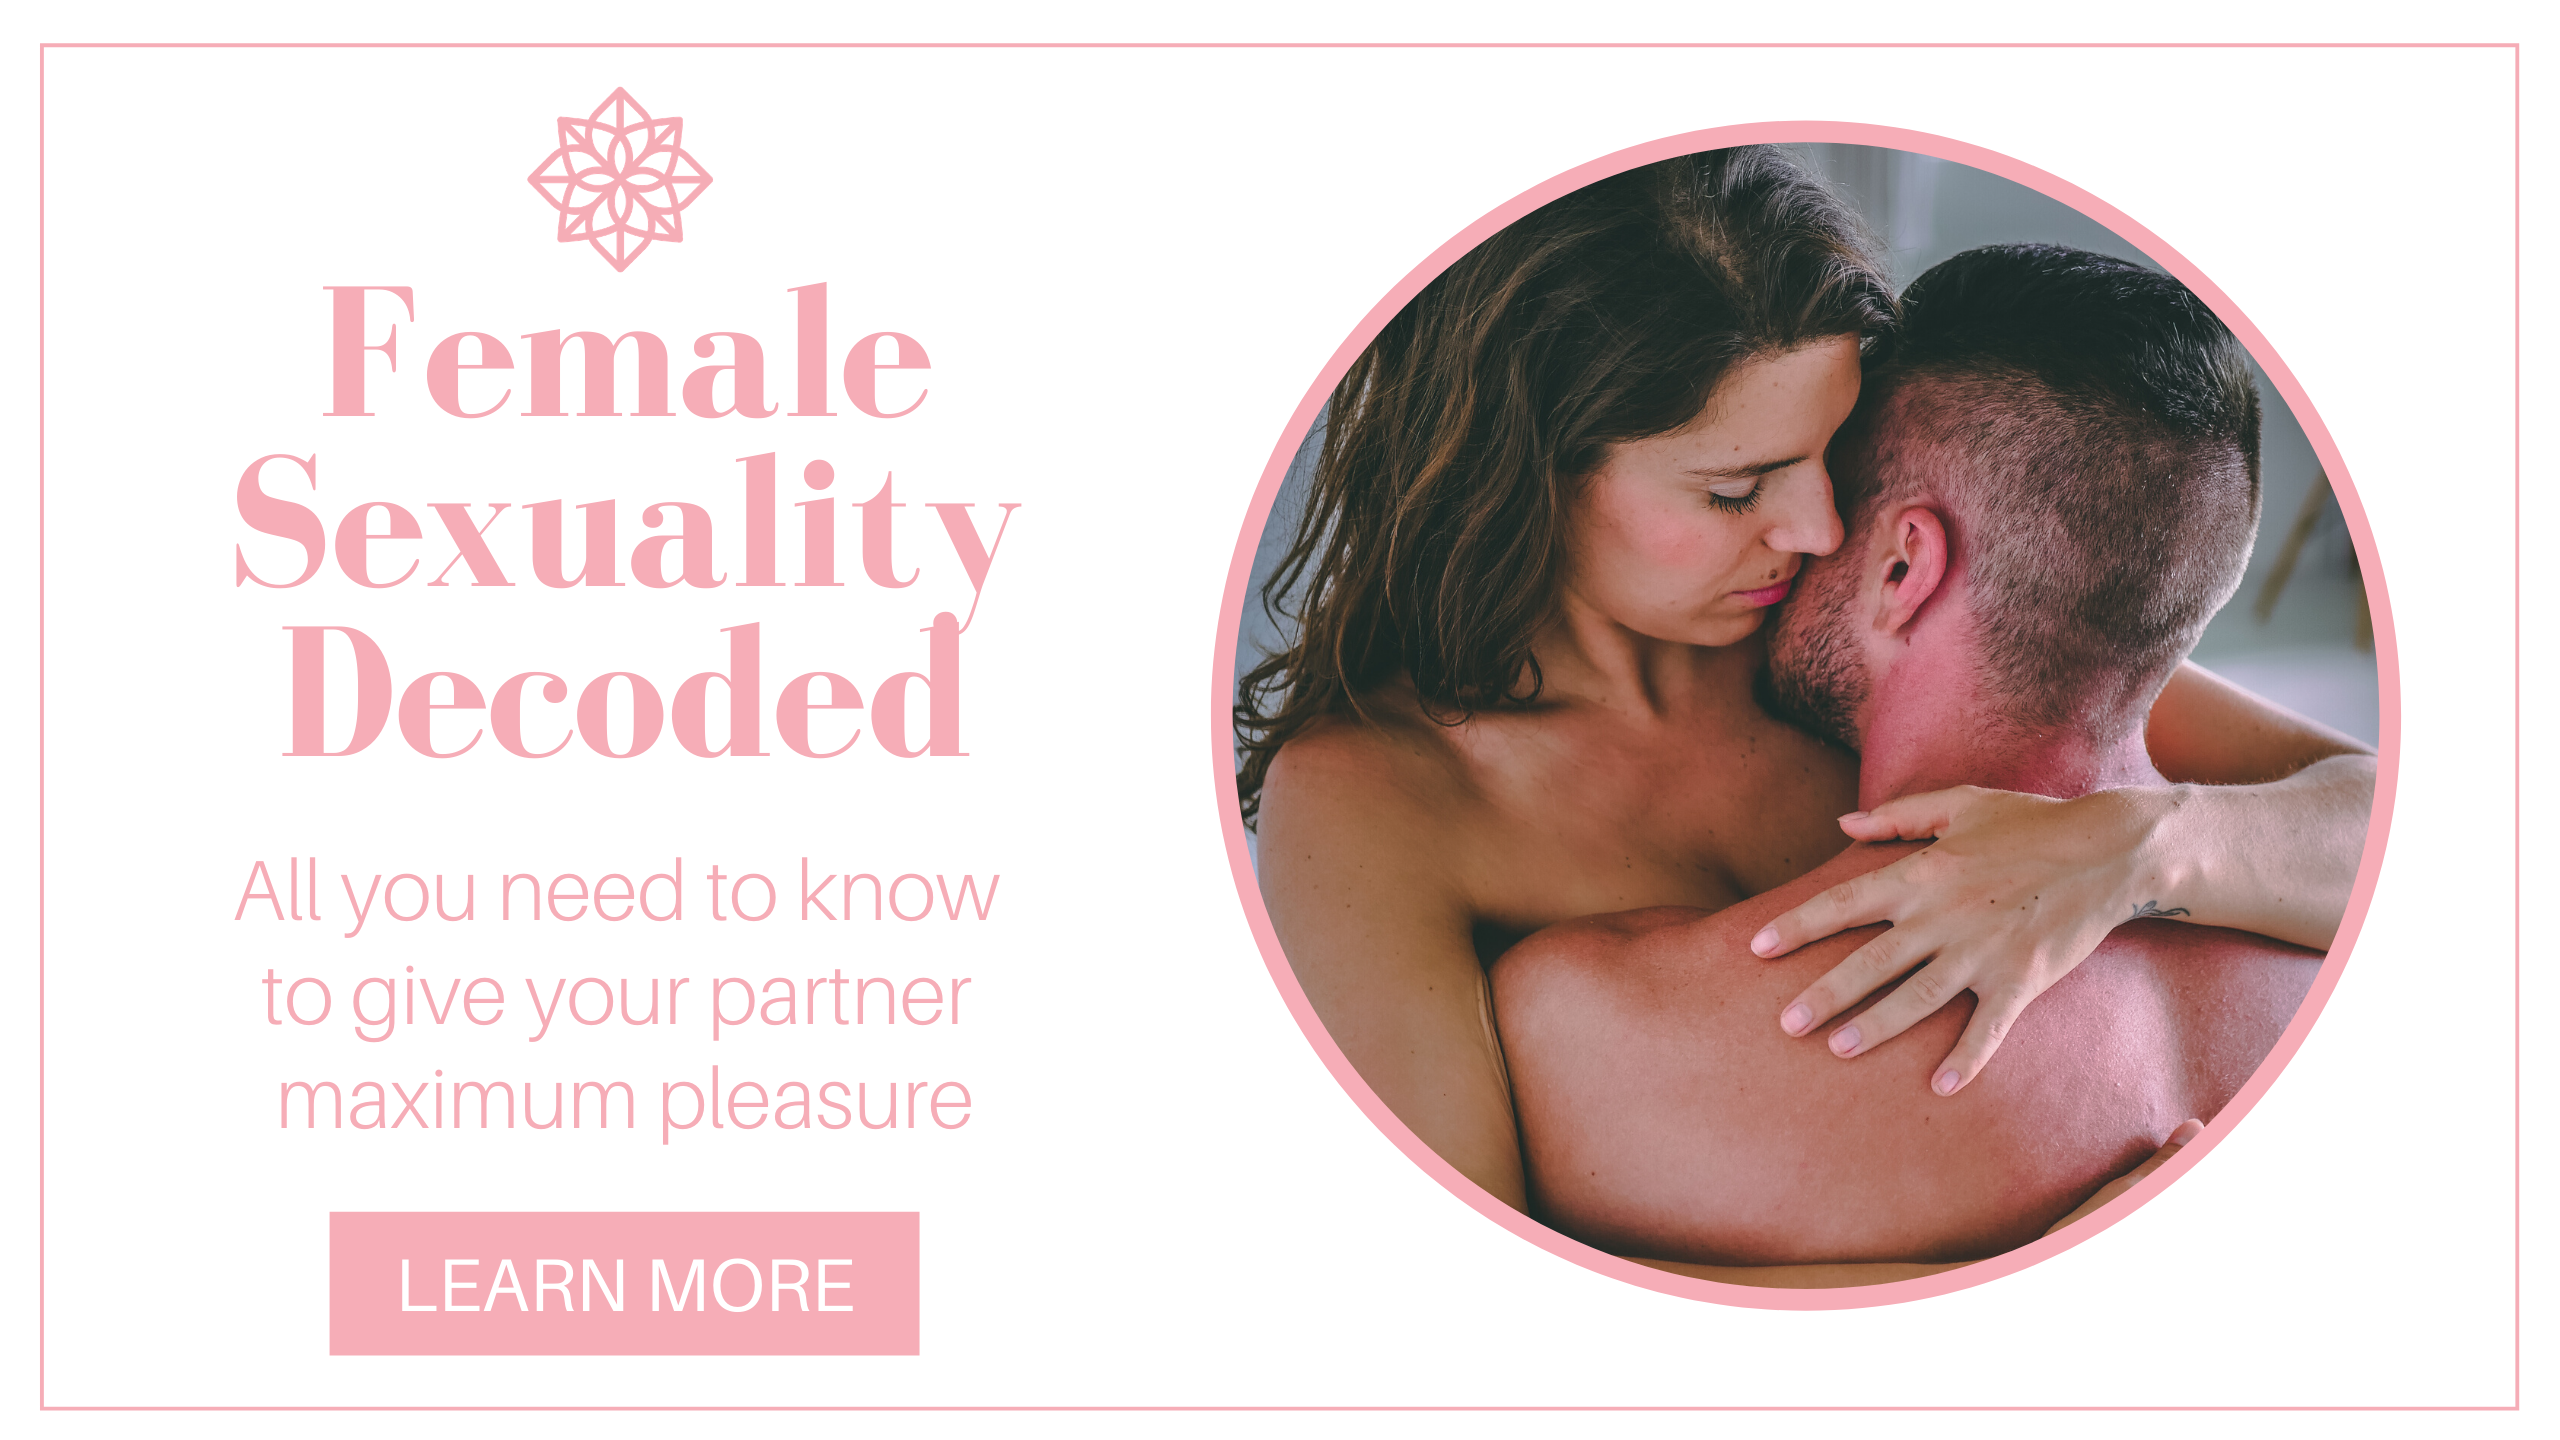 Female Sexuality Decoded Online Program for Men